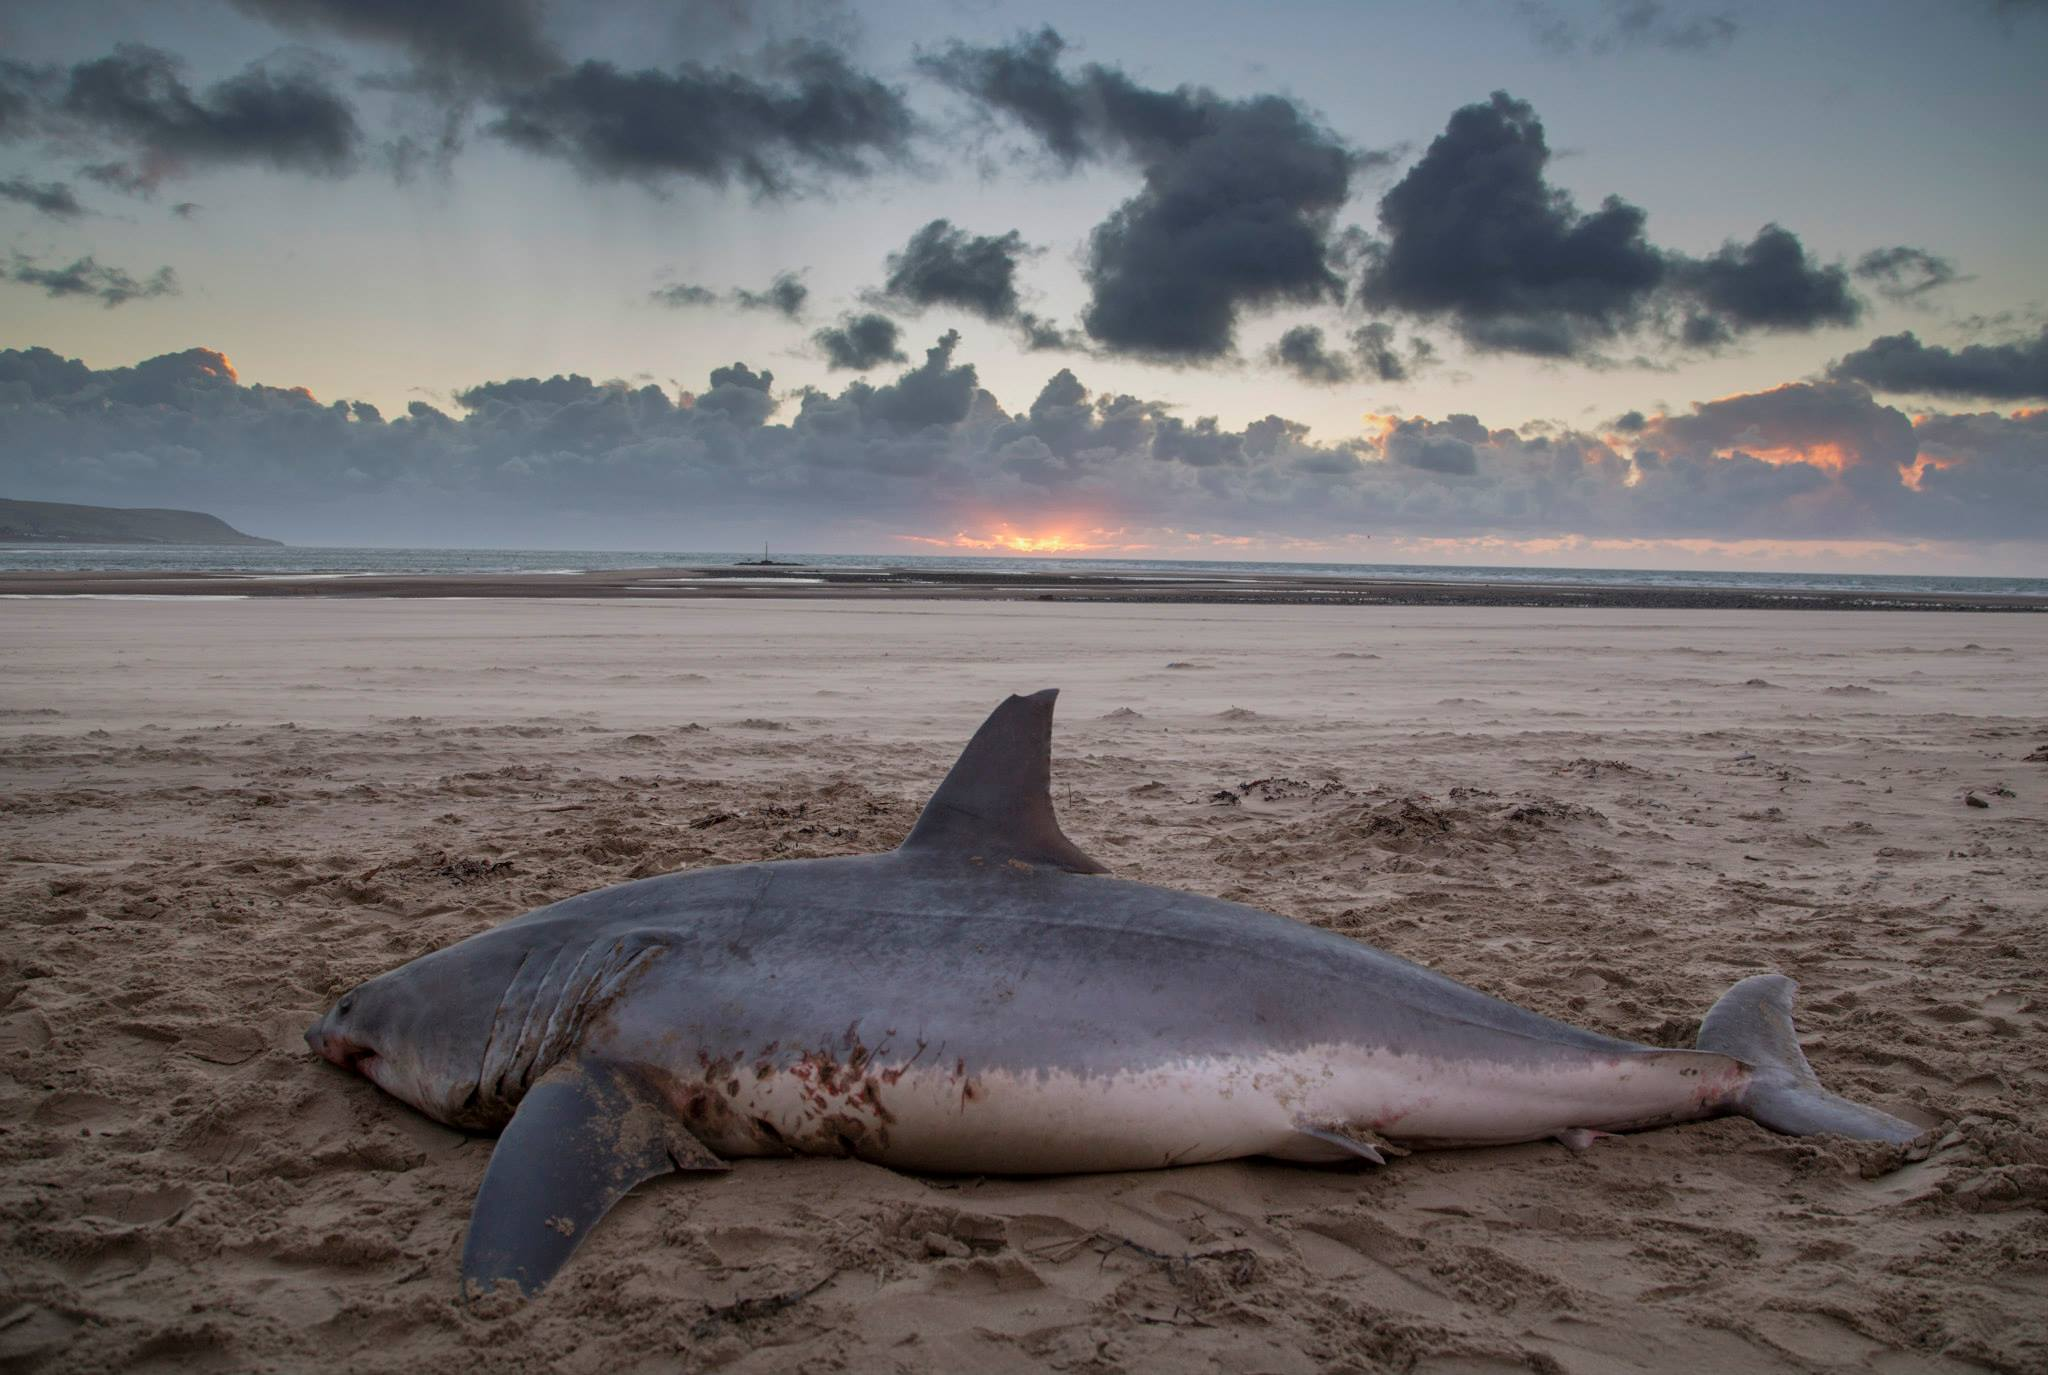 Shark Washed Up On Beach Uk